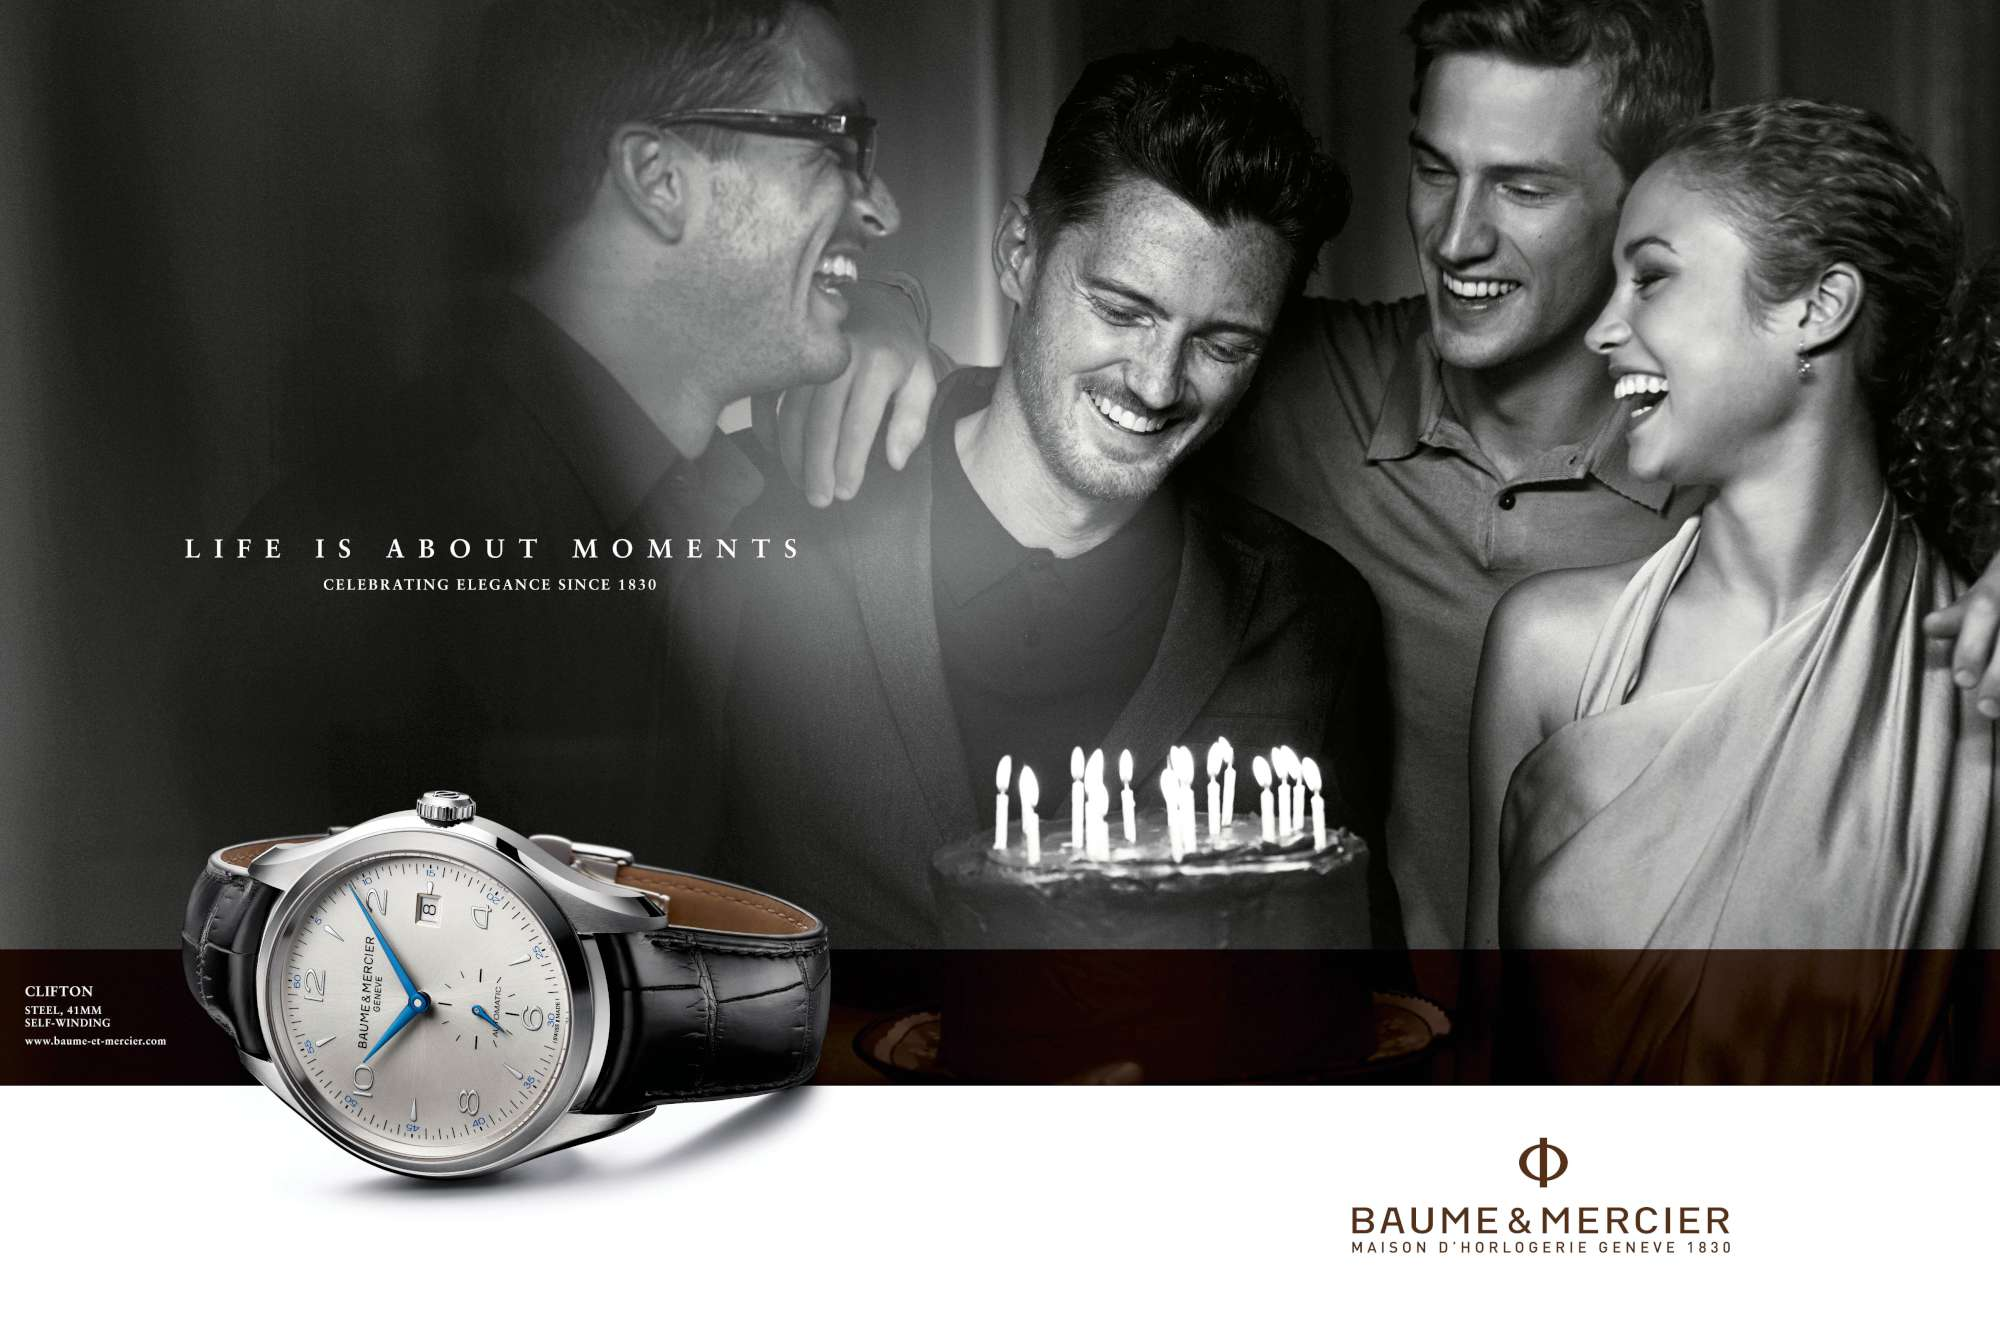 Baume_mercier_birthday-2000